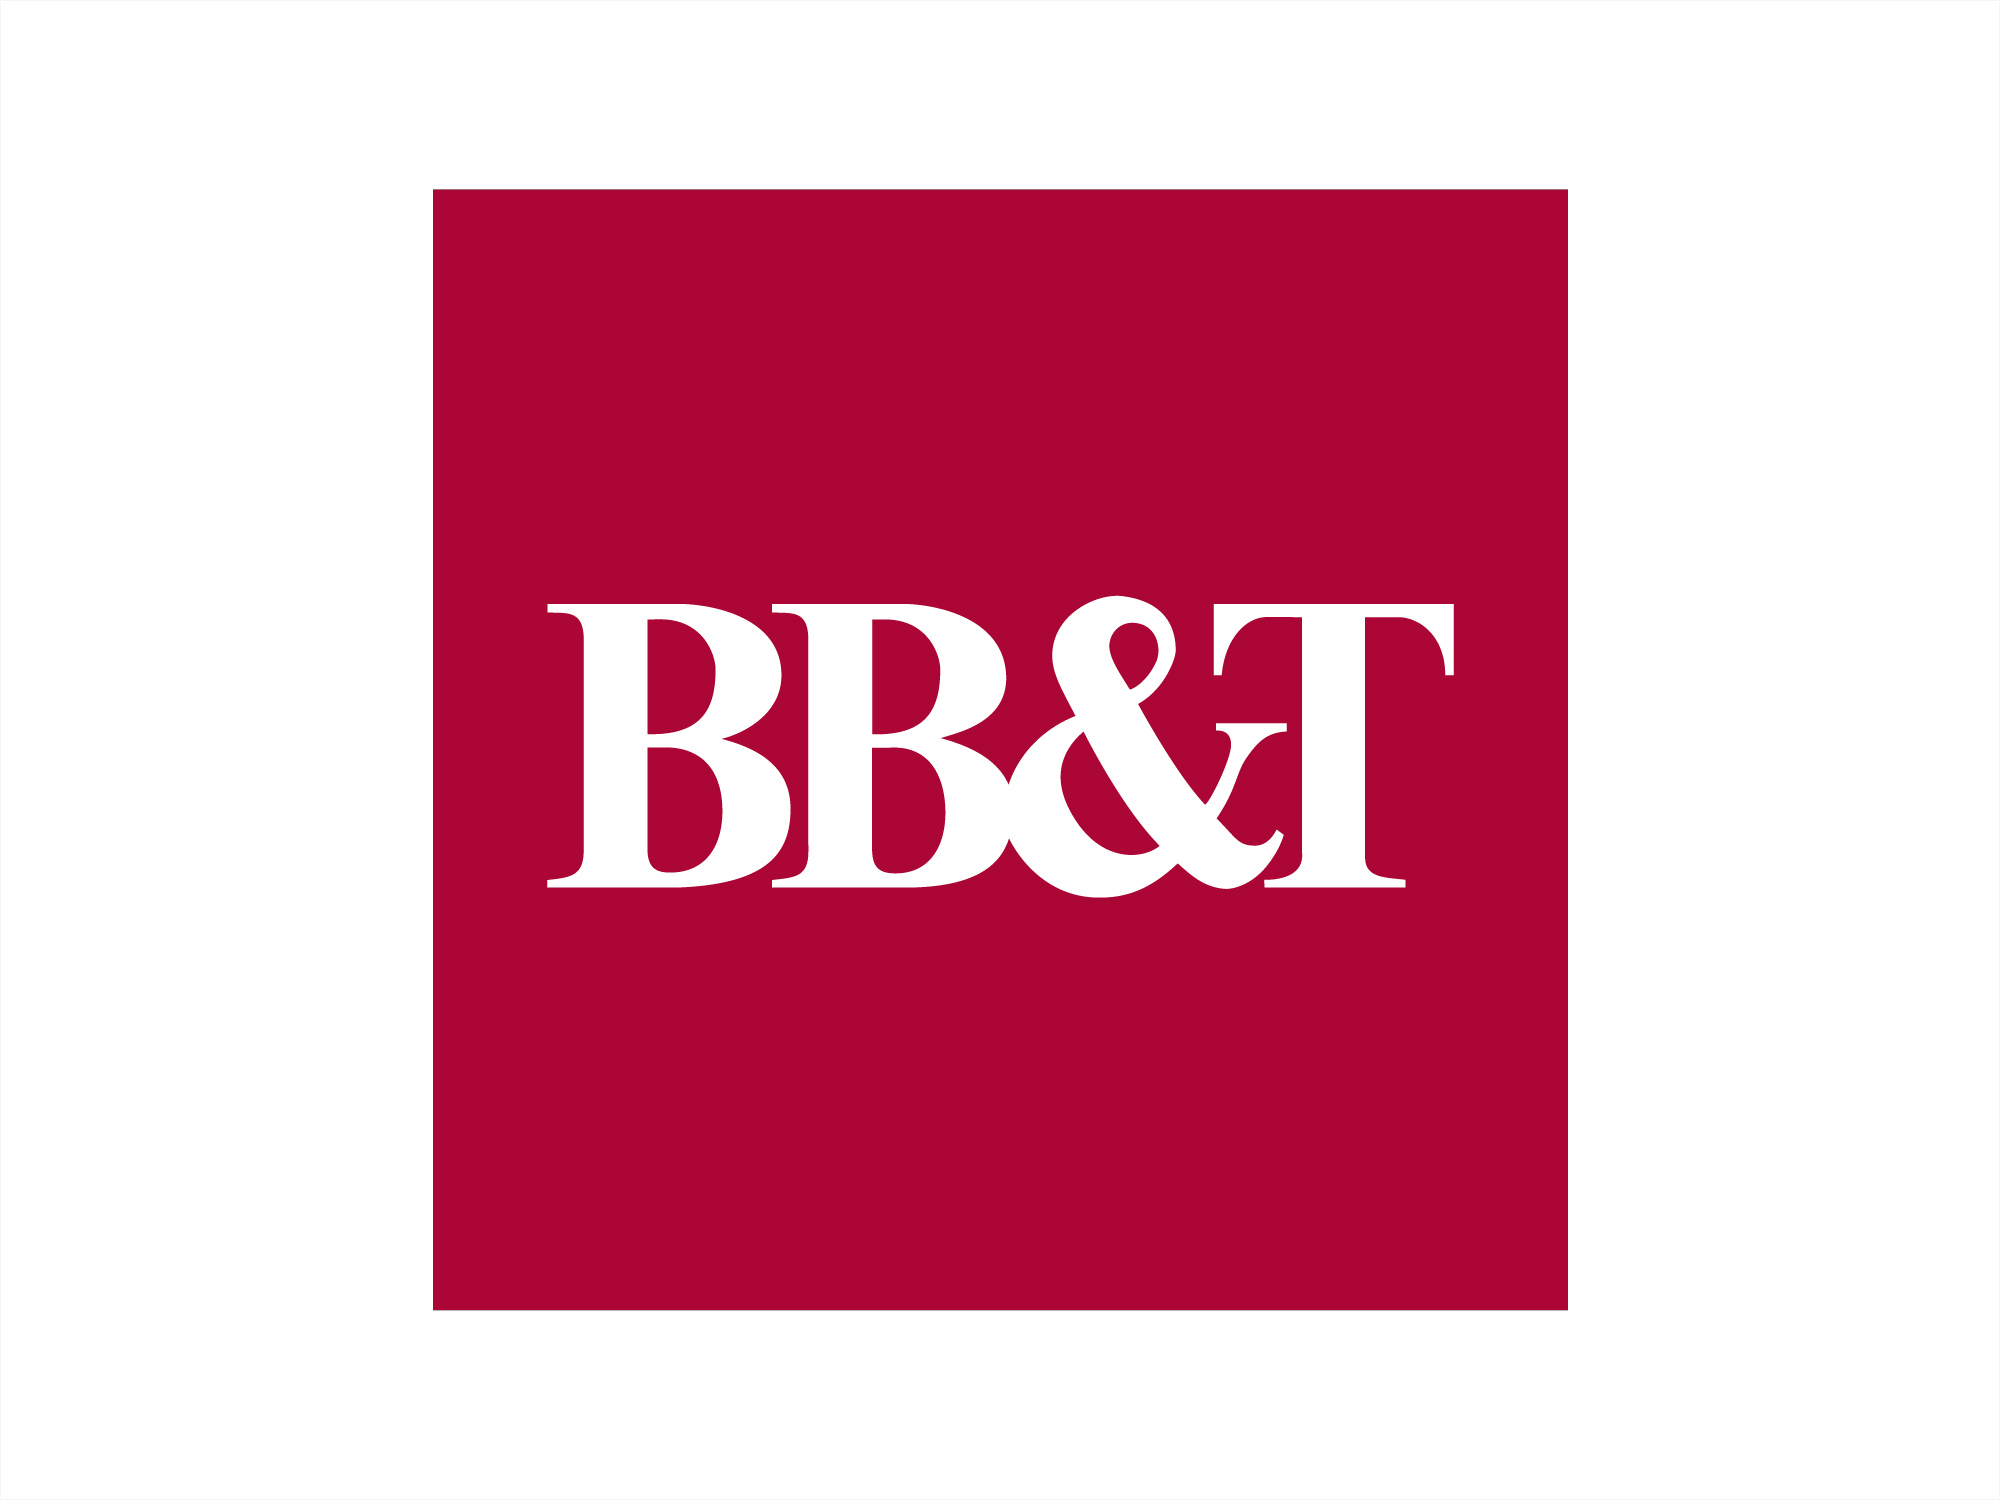 'Technical issue' hits BB&T Banks, including ATMs and mobile banking